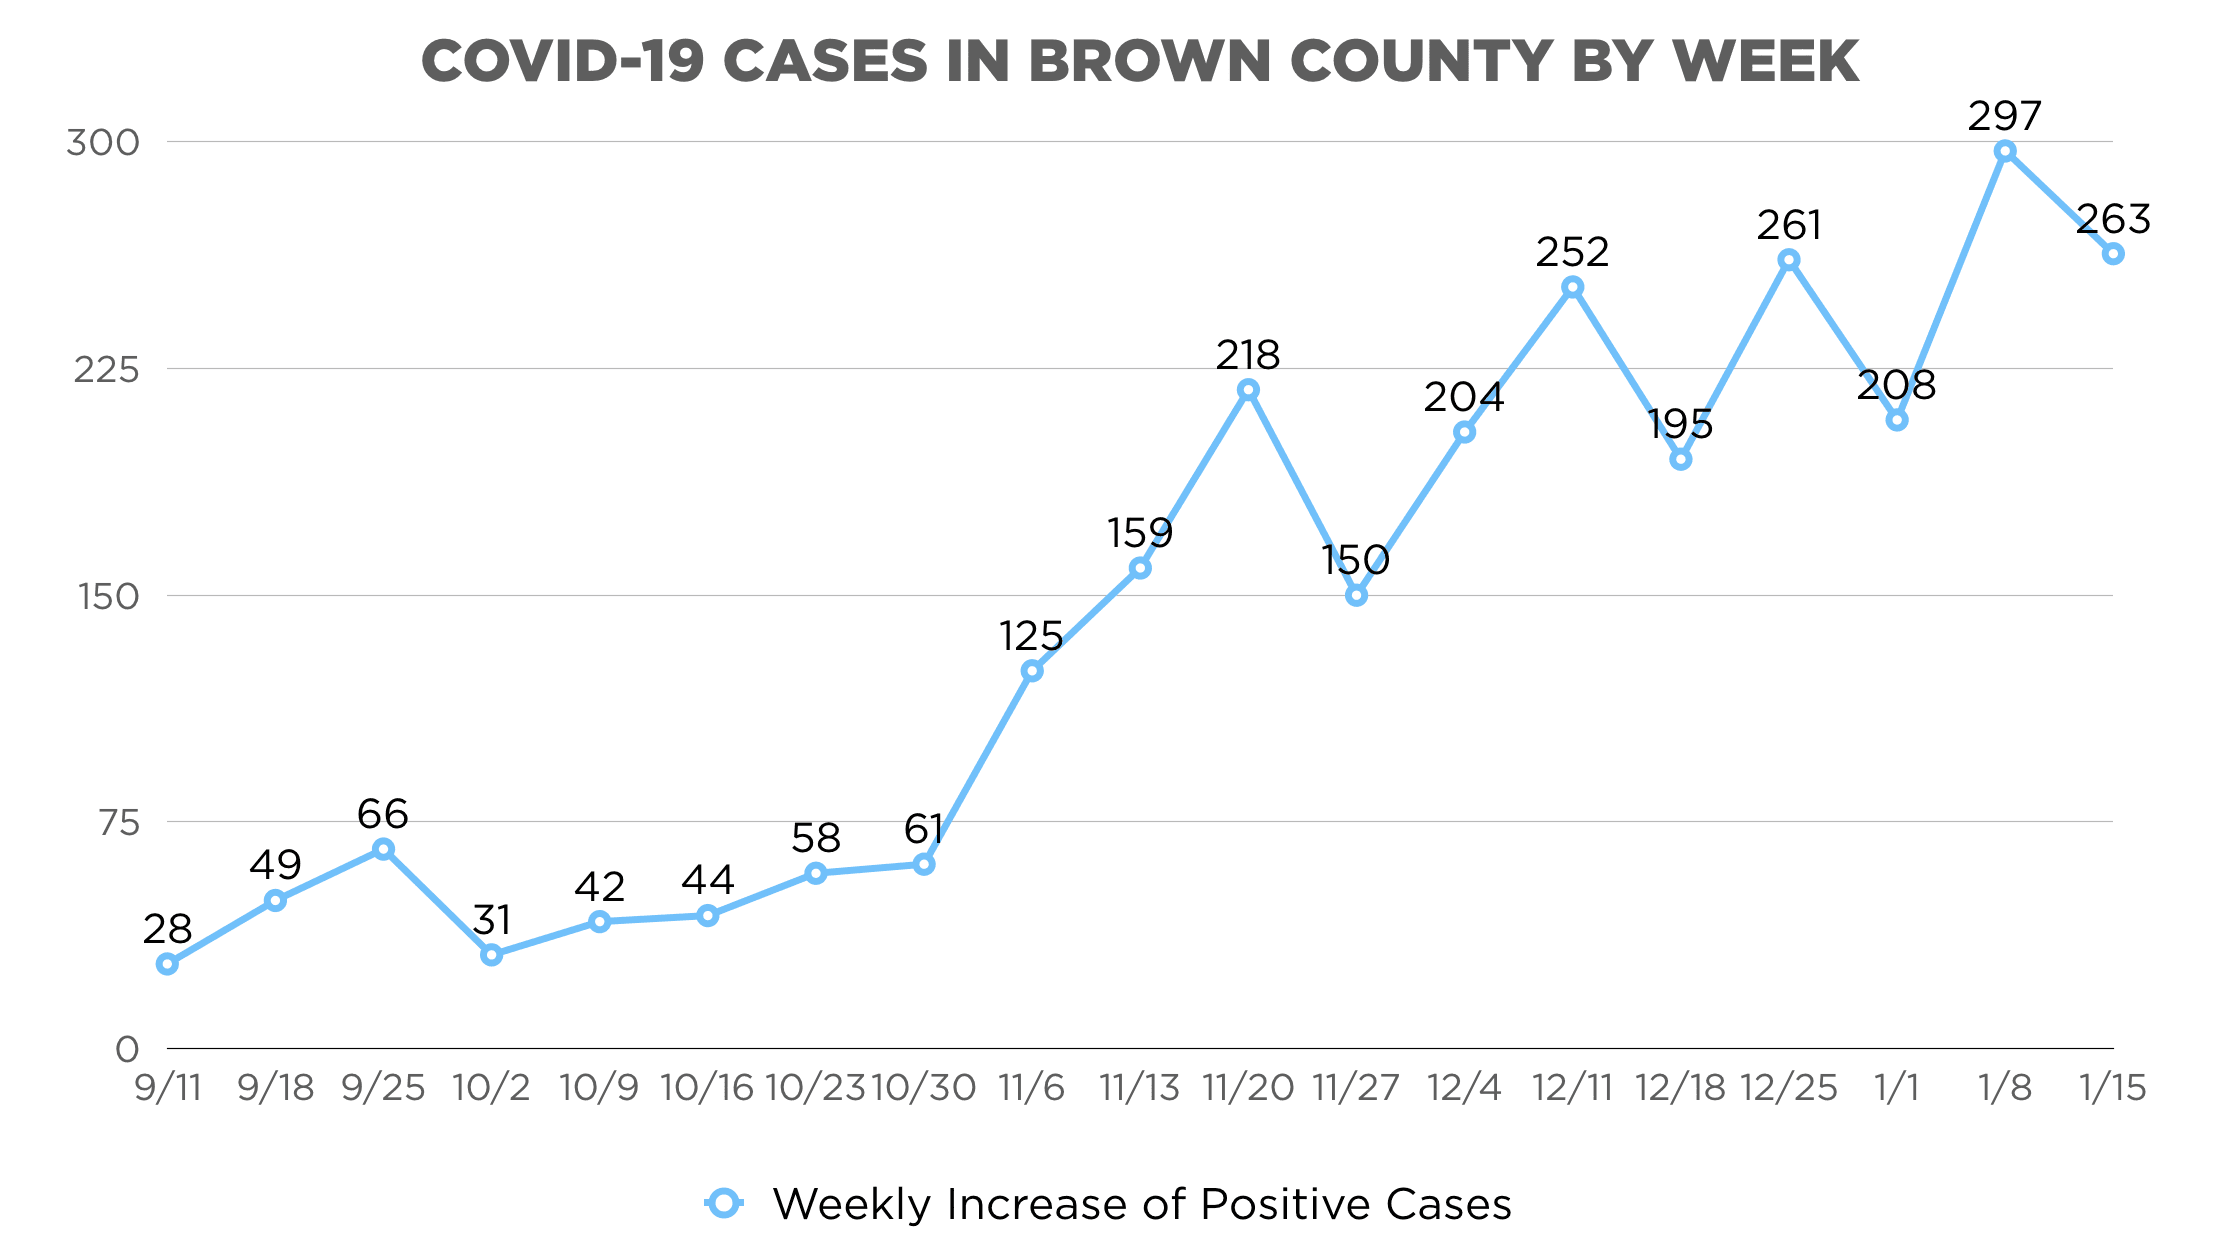 COVID-19 CASES IN BROWN COUNTY BY WEEK 1-15